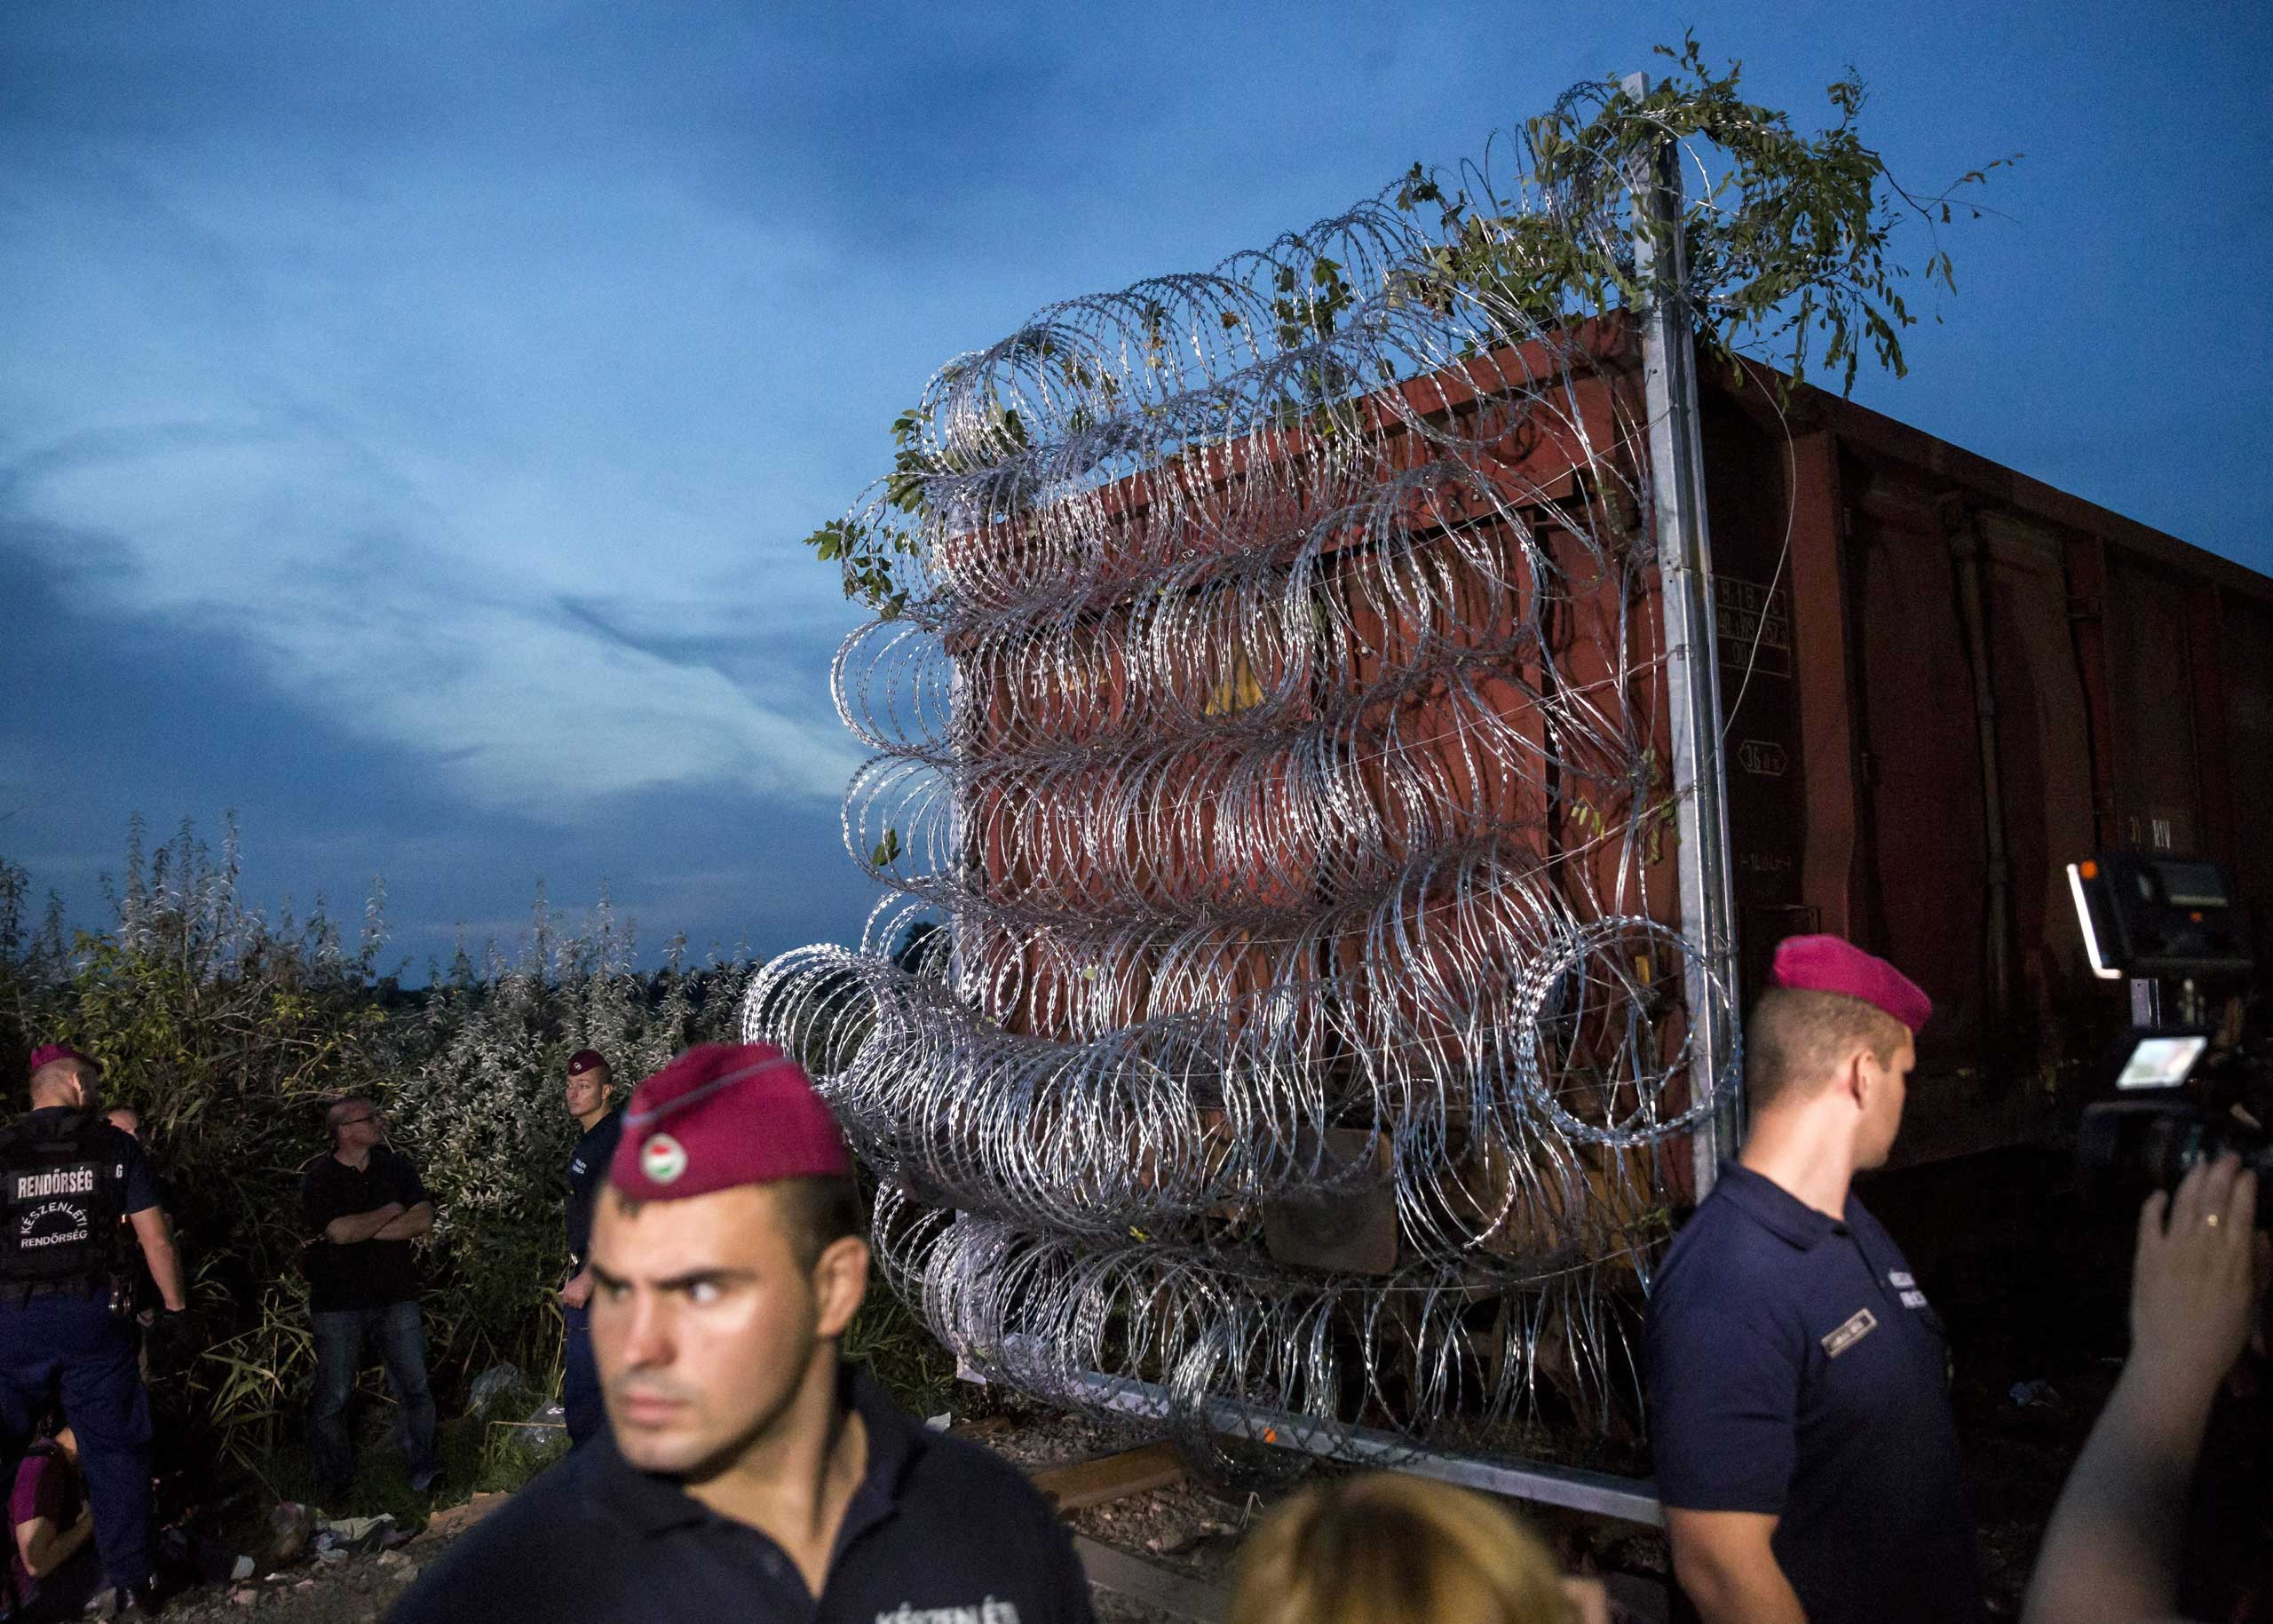 A wagon equipped with razor wire is placed at the border between Hungary and Serbia in Roszke, some 10 miles southeast from Budapest, Hungary, Sept. 14, 2015, to close the gap of the temporary border fence at the Horgos-Szeged railway line.